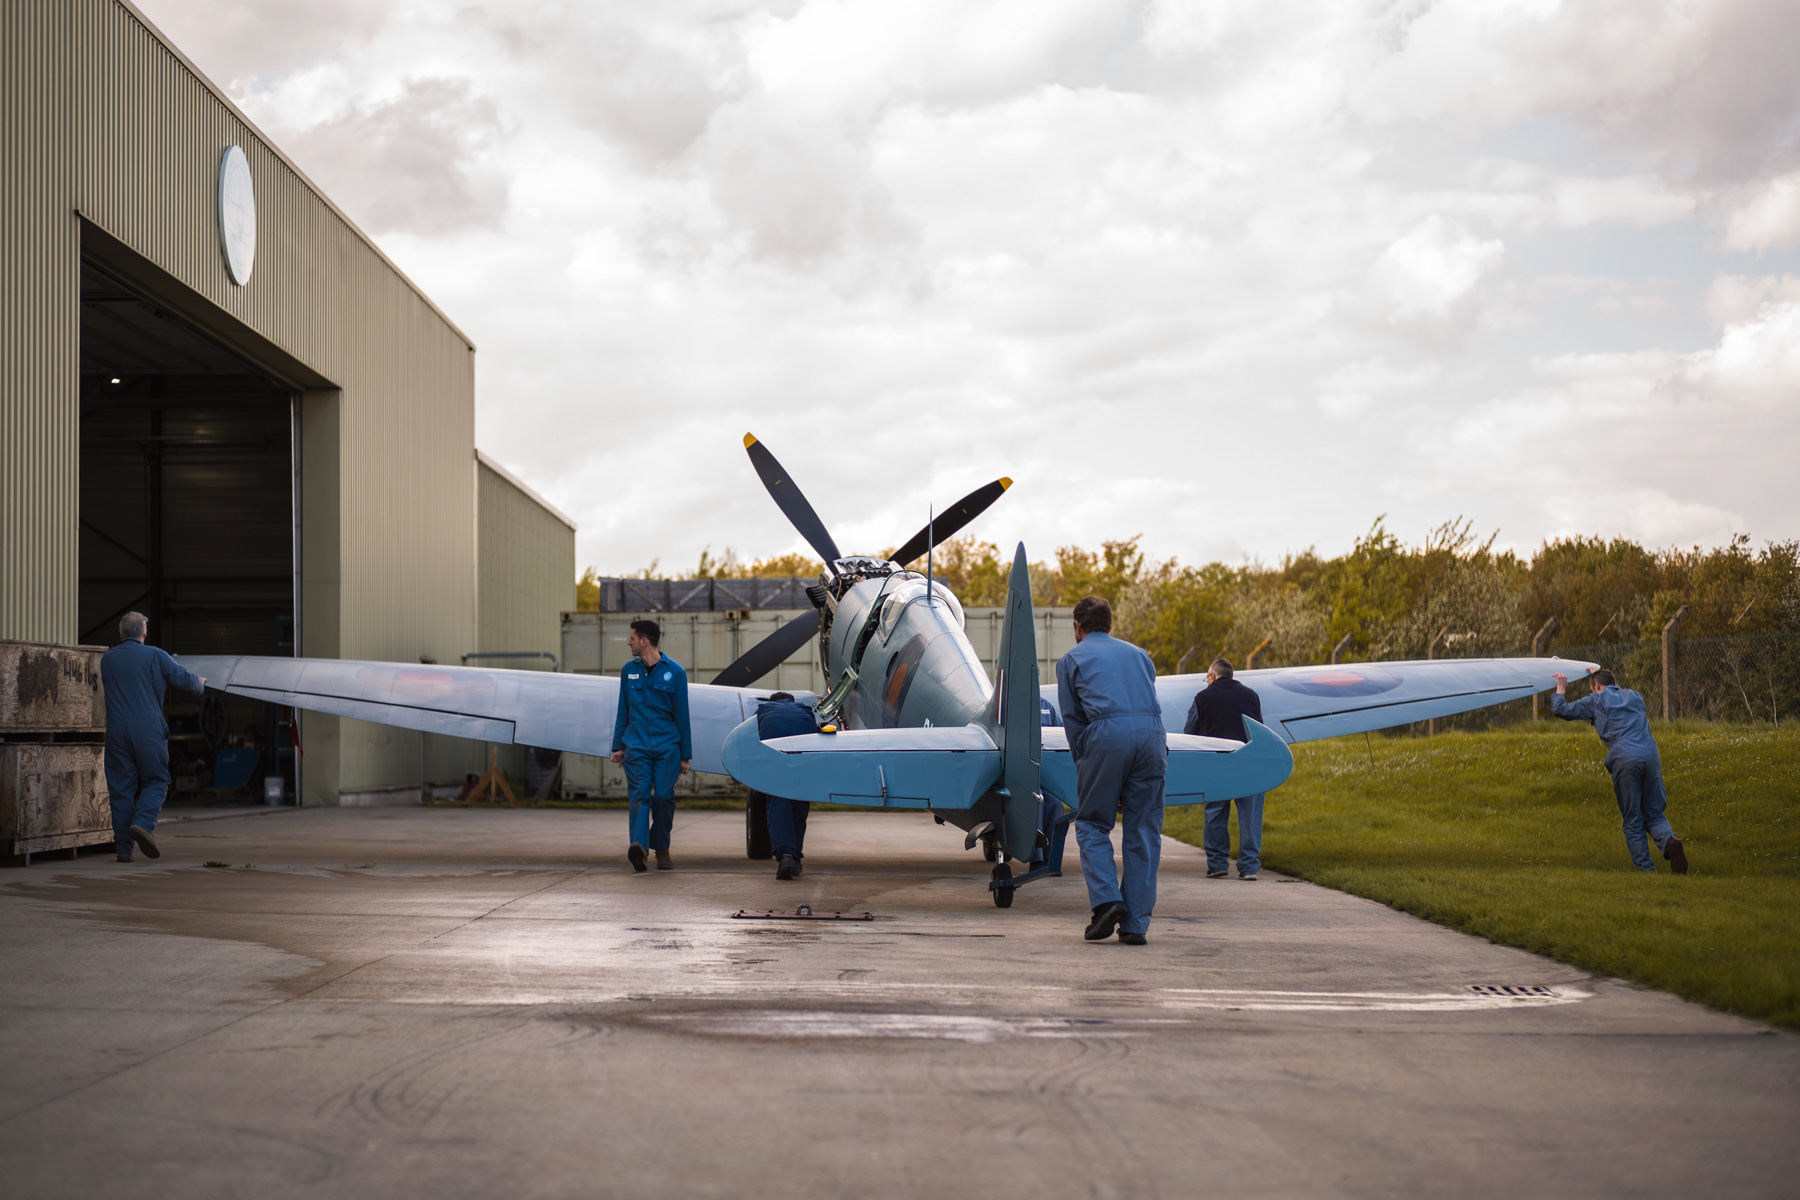 HFL-Spitfire-restoration-engineers-prxi-into-hangar.jpg